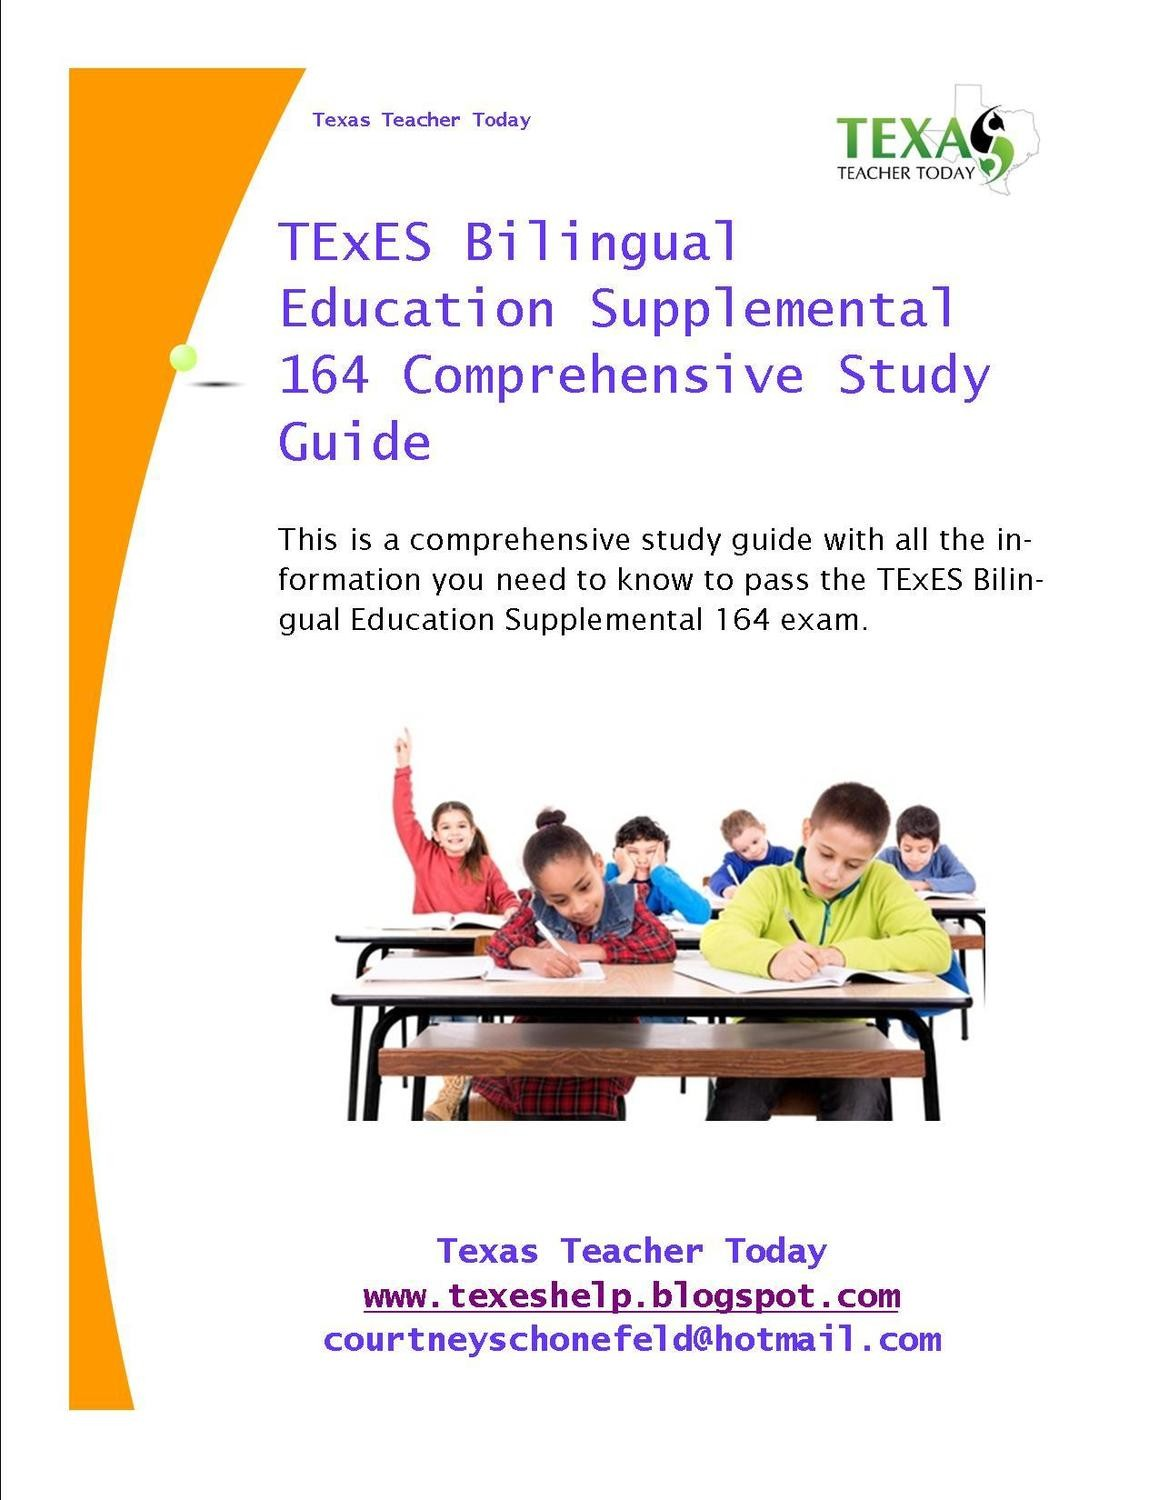 TExES Bilingual Education Supplemental 164 Comprehensive Study Guide